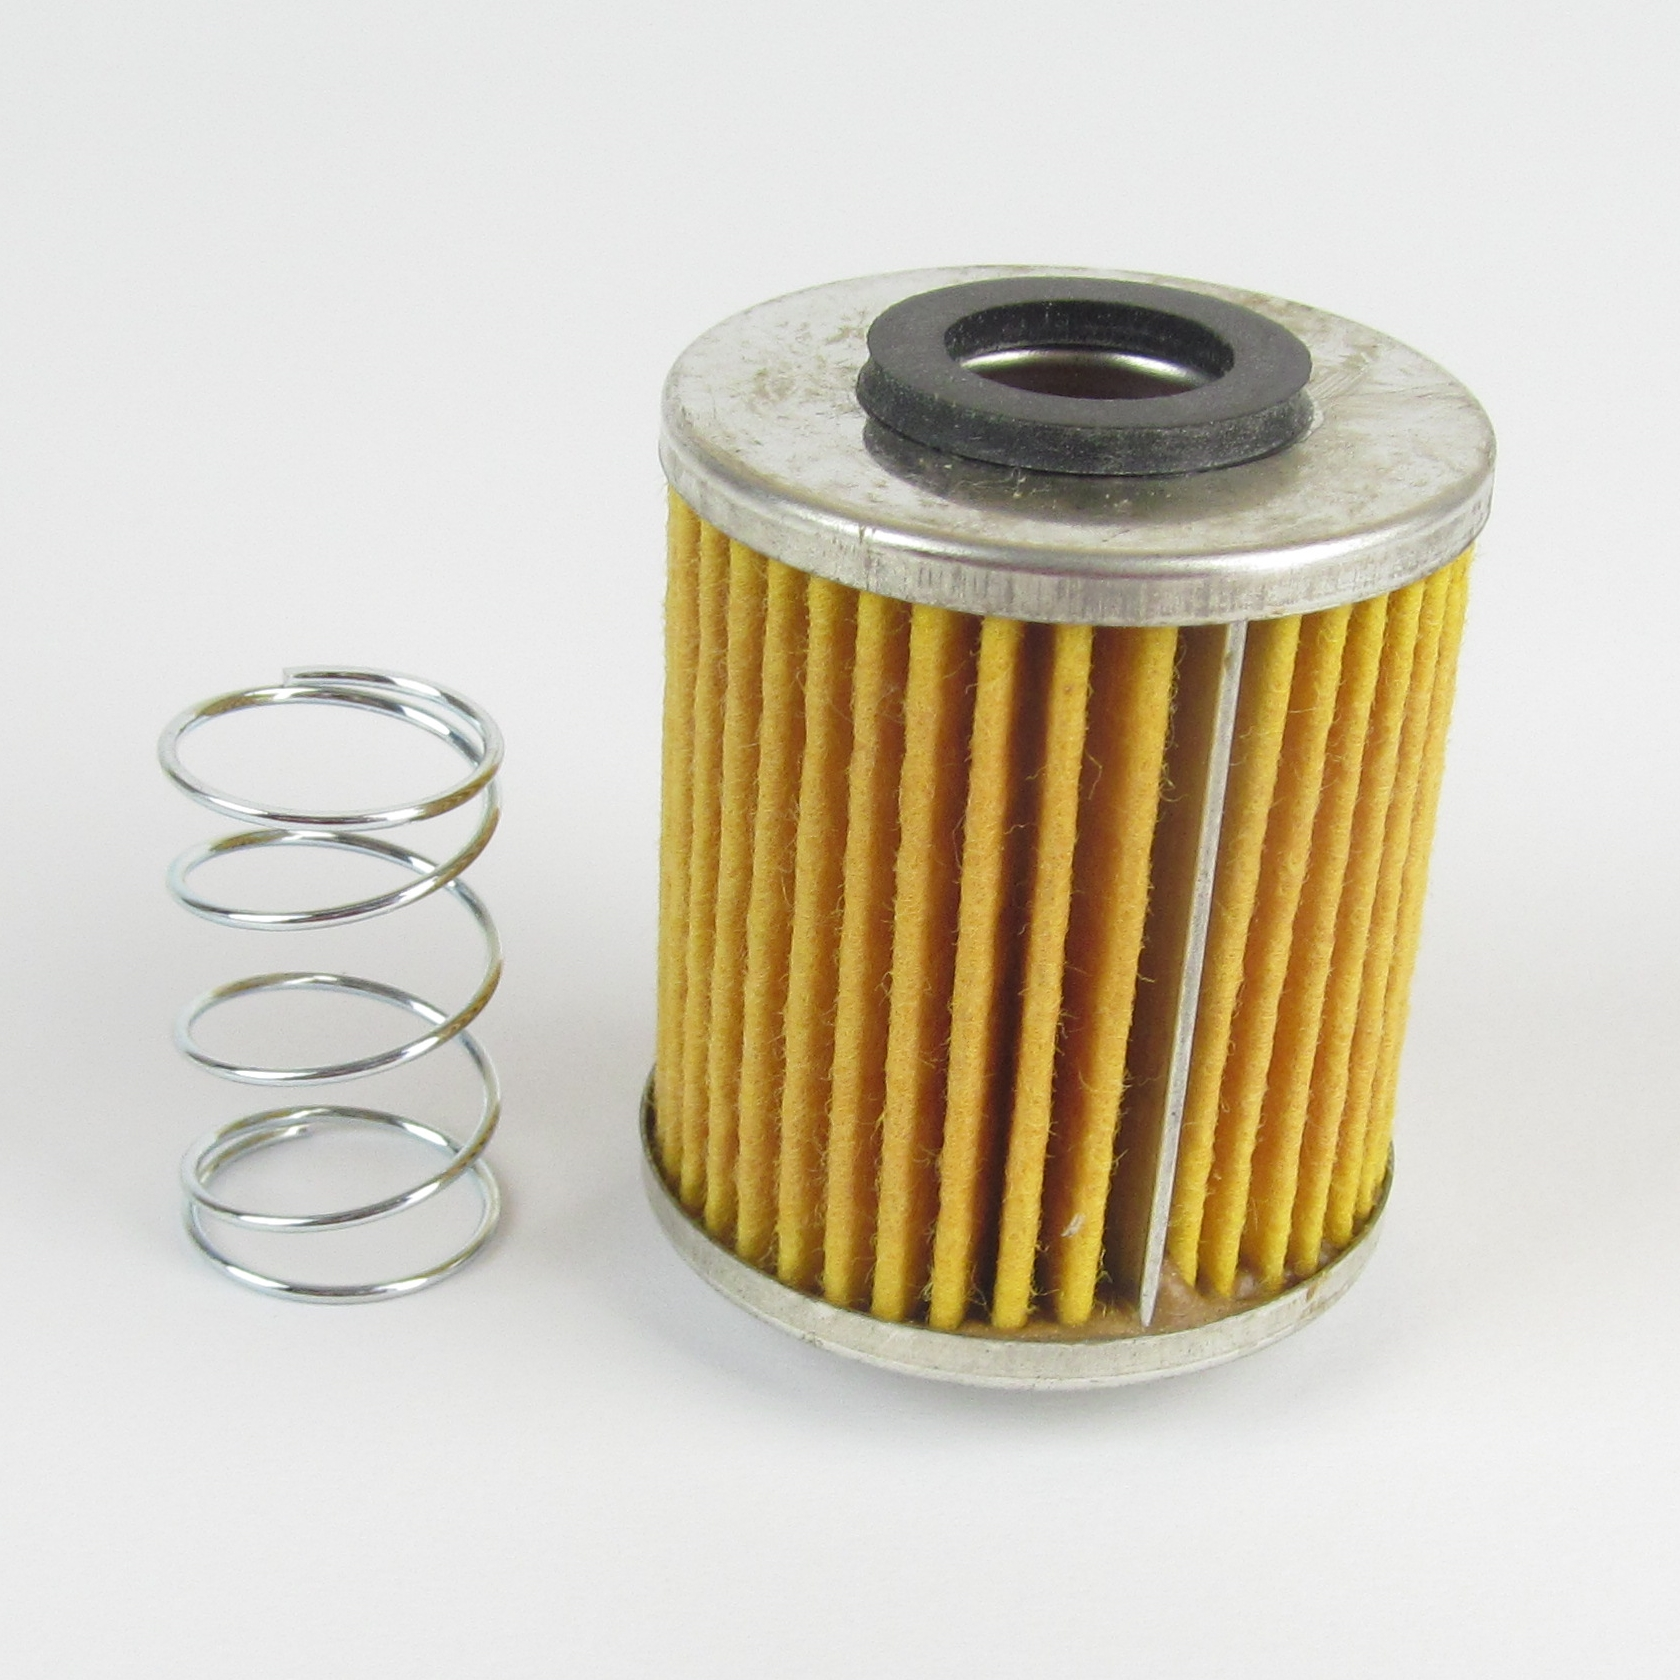 hight resolution of fispa fuel filter replacement element spring small type